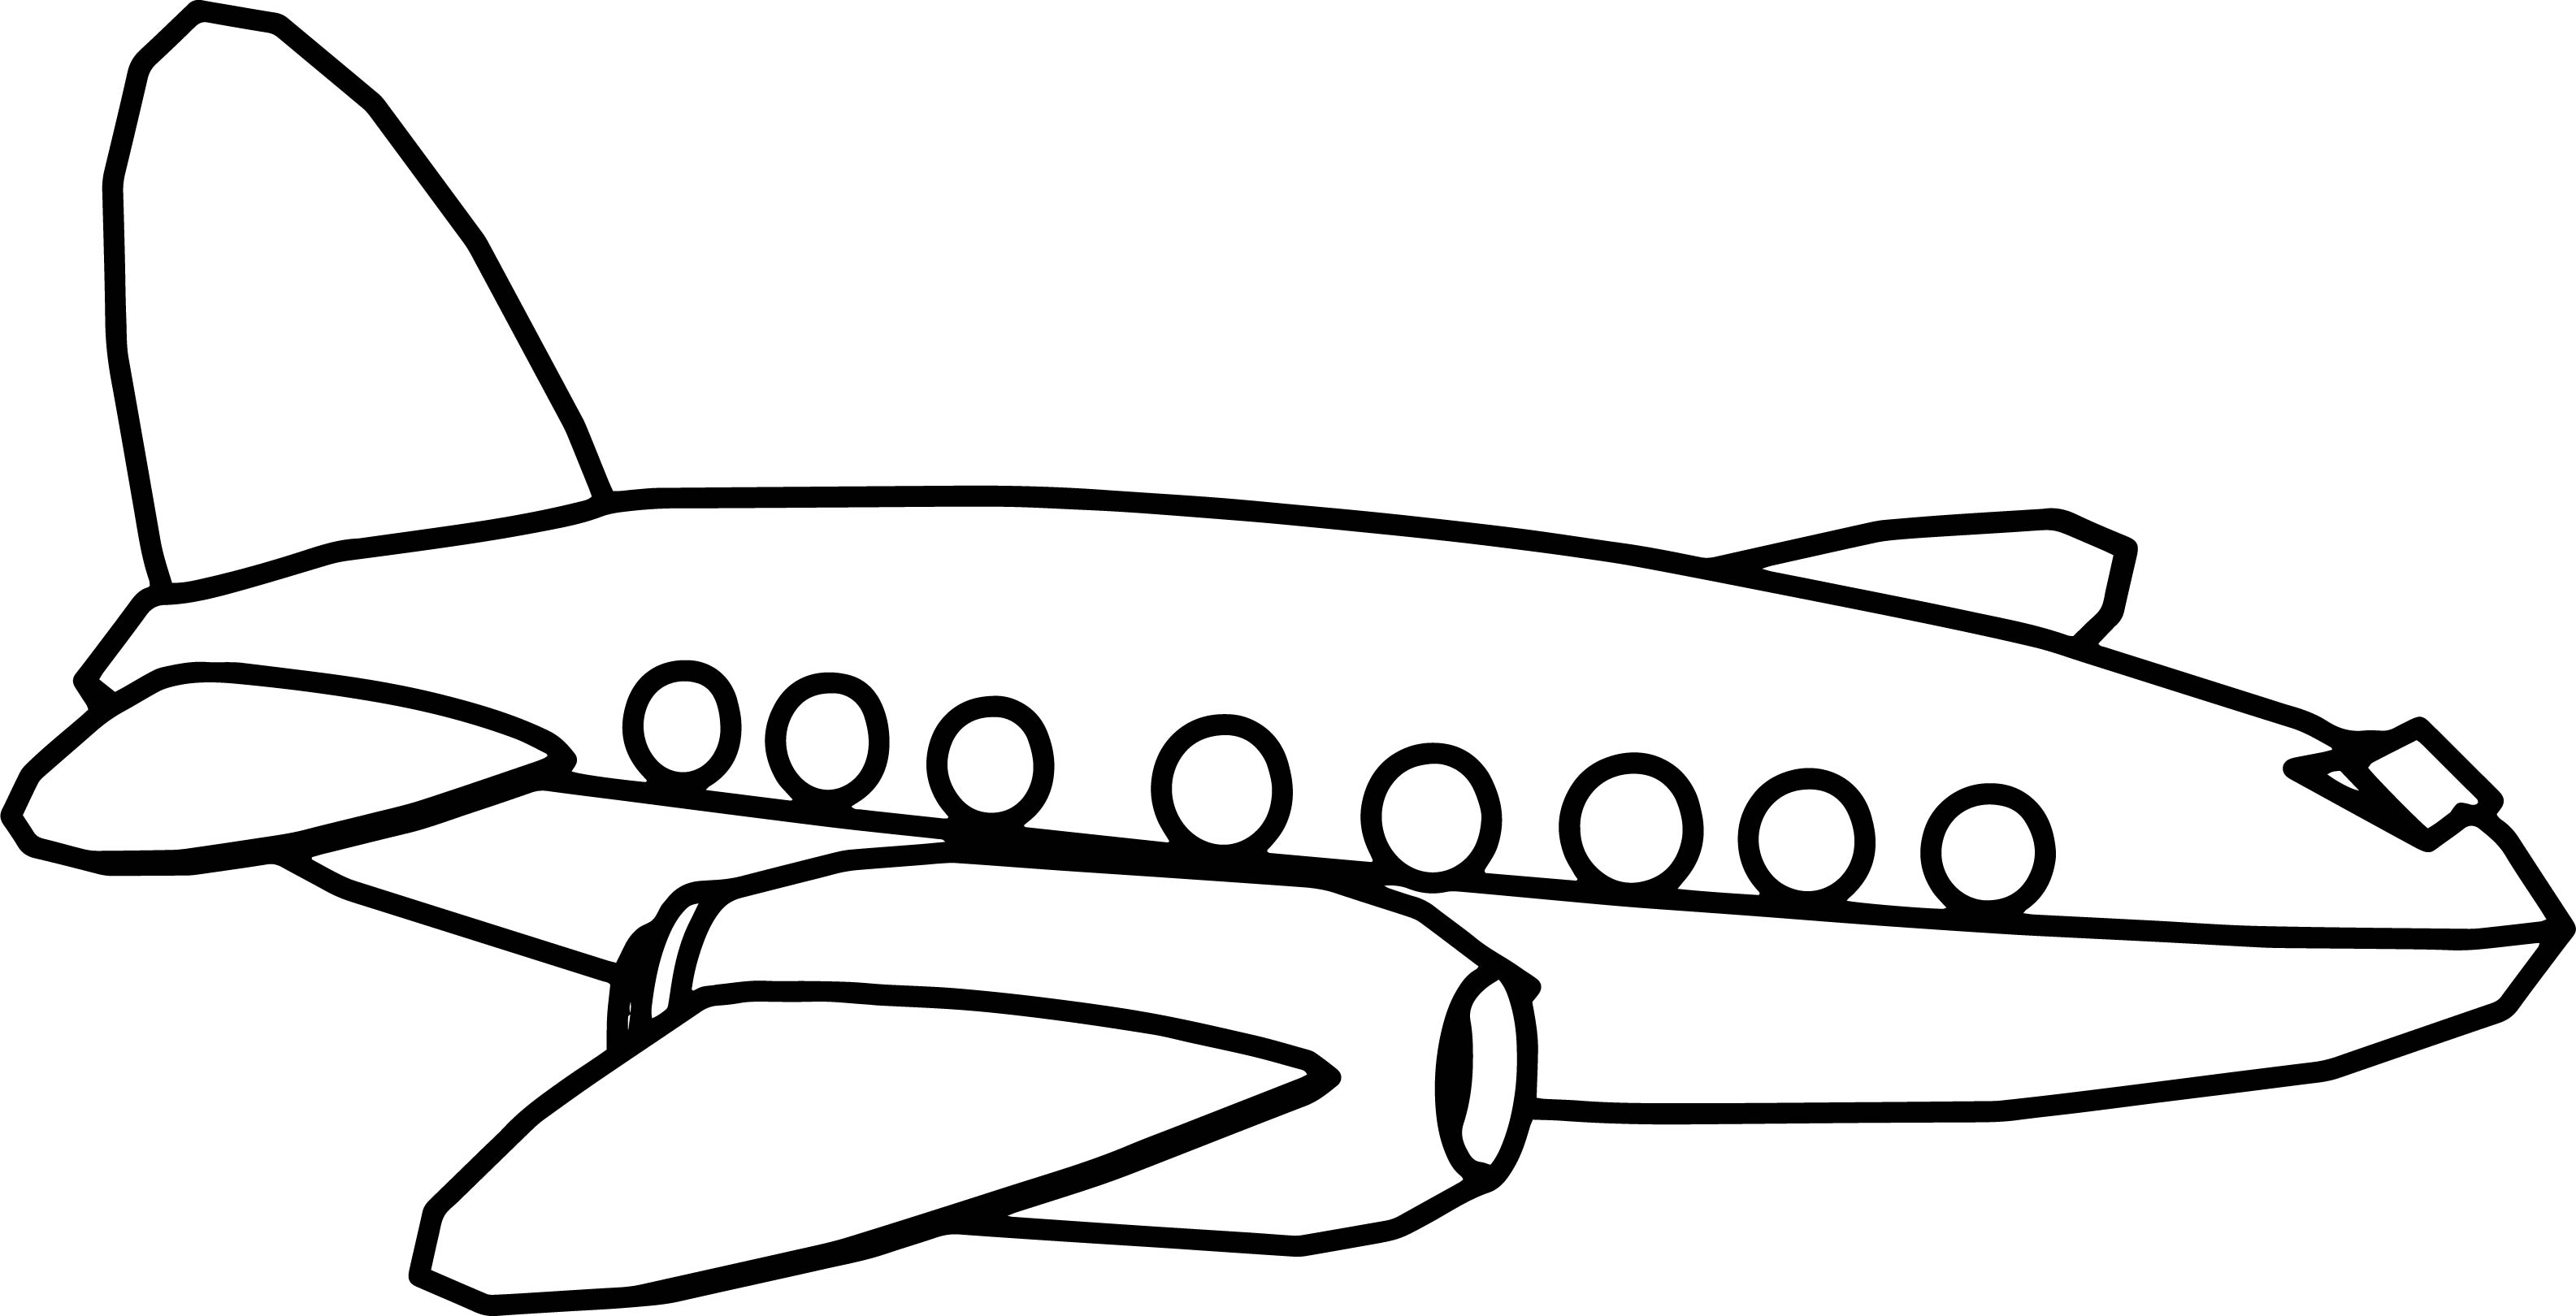 Plane Cartoon Drawing   Free download on ClipArtMag